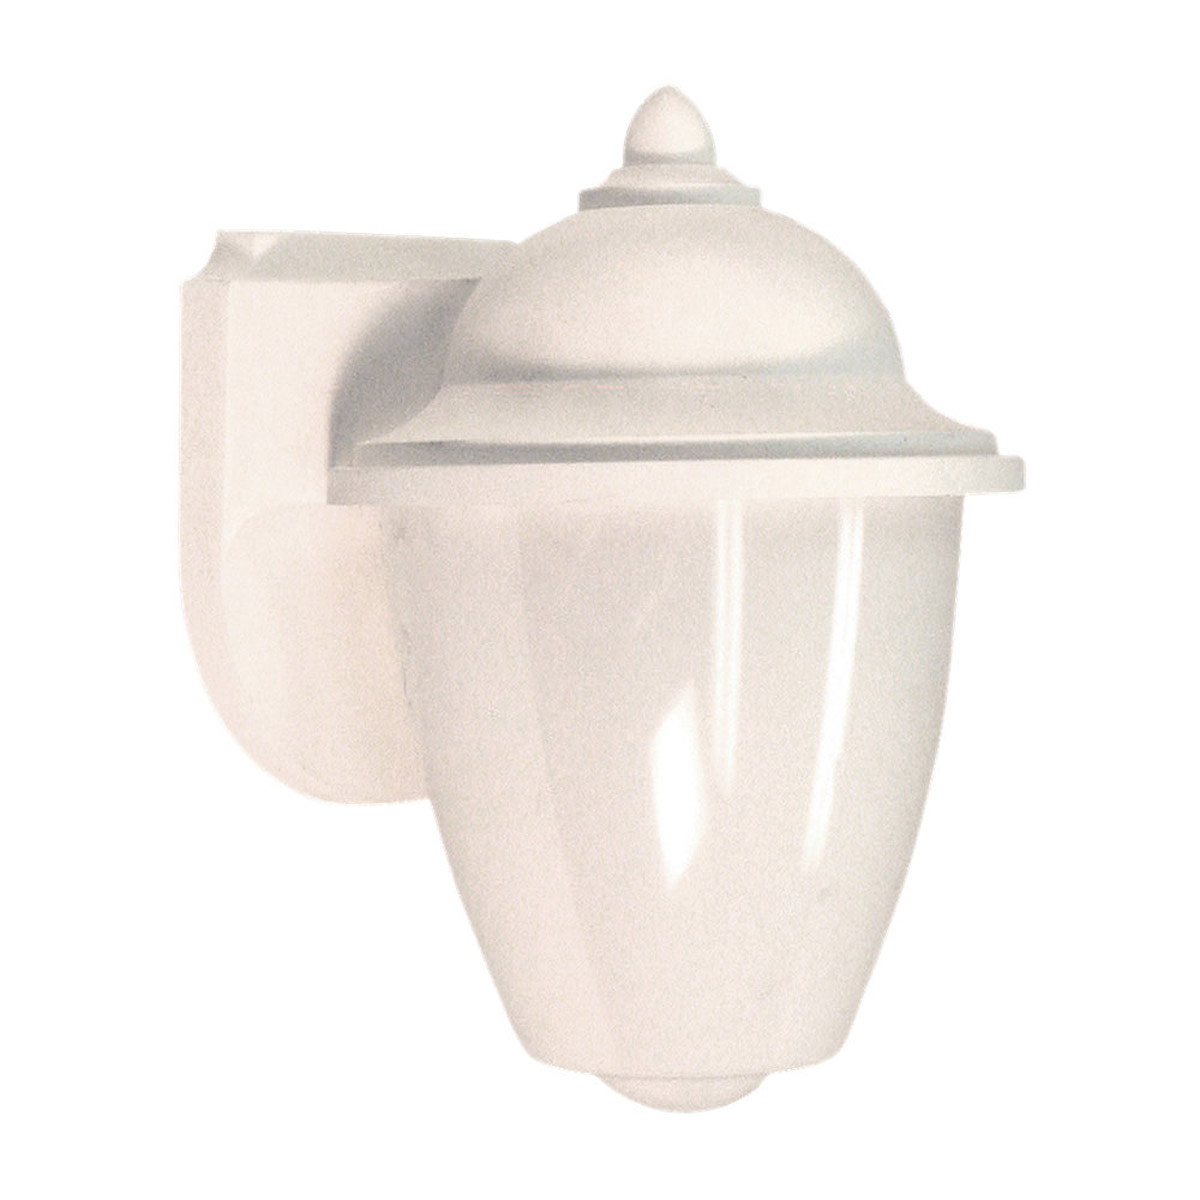 Sea Gull Lighting Lormont 1 Light Outdoor Wall Lantern in White 88018-15 photo